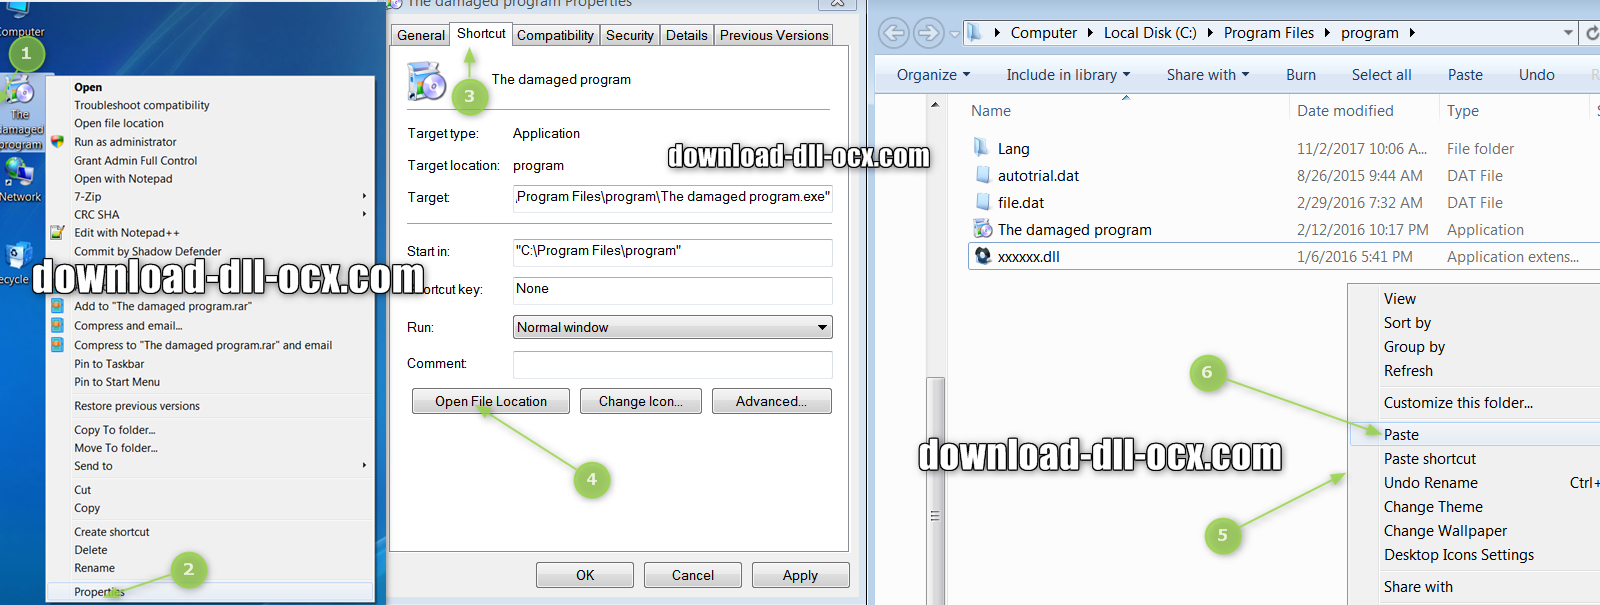 how to install Cygpixbufloader-png.dll file? for fix missing